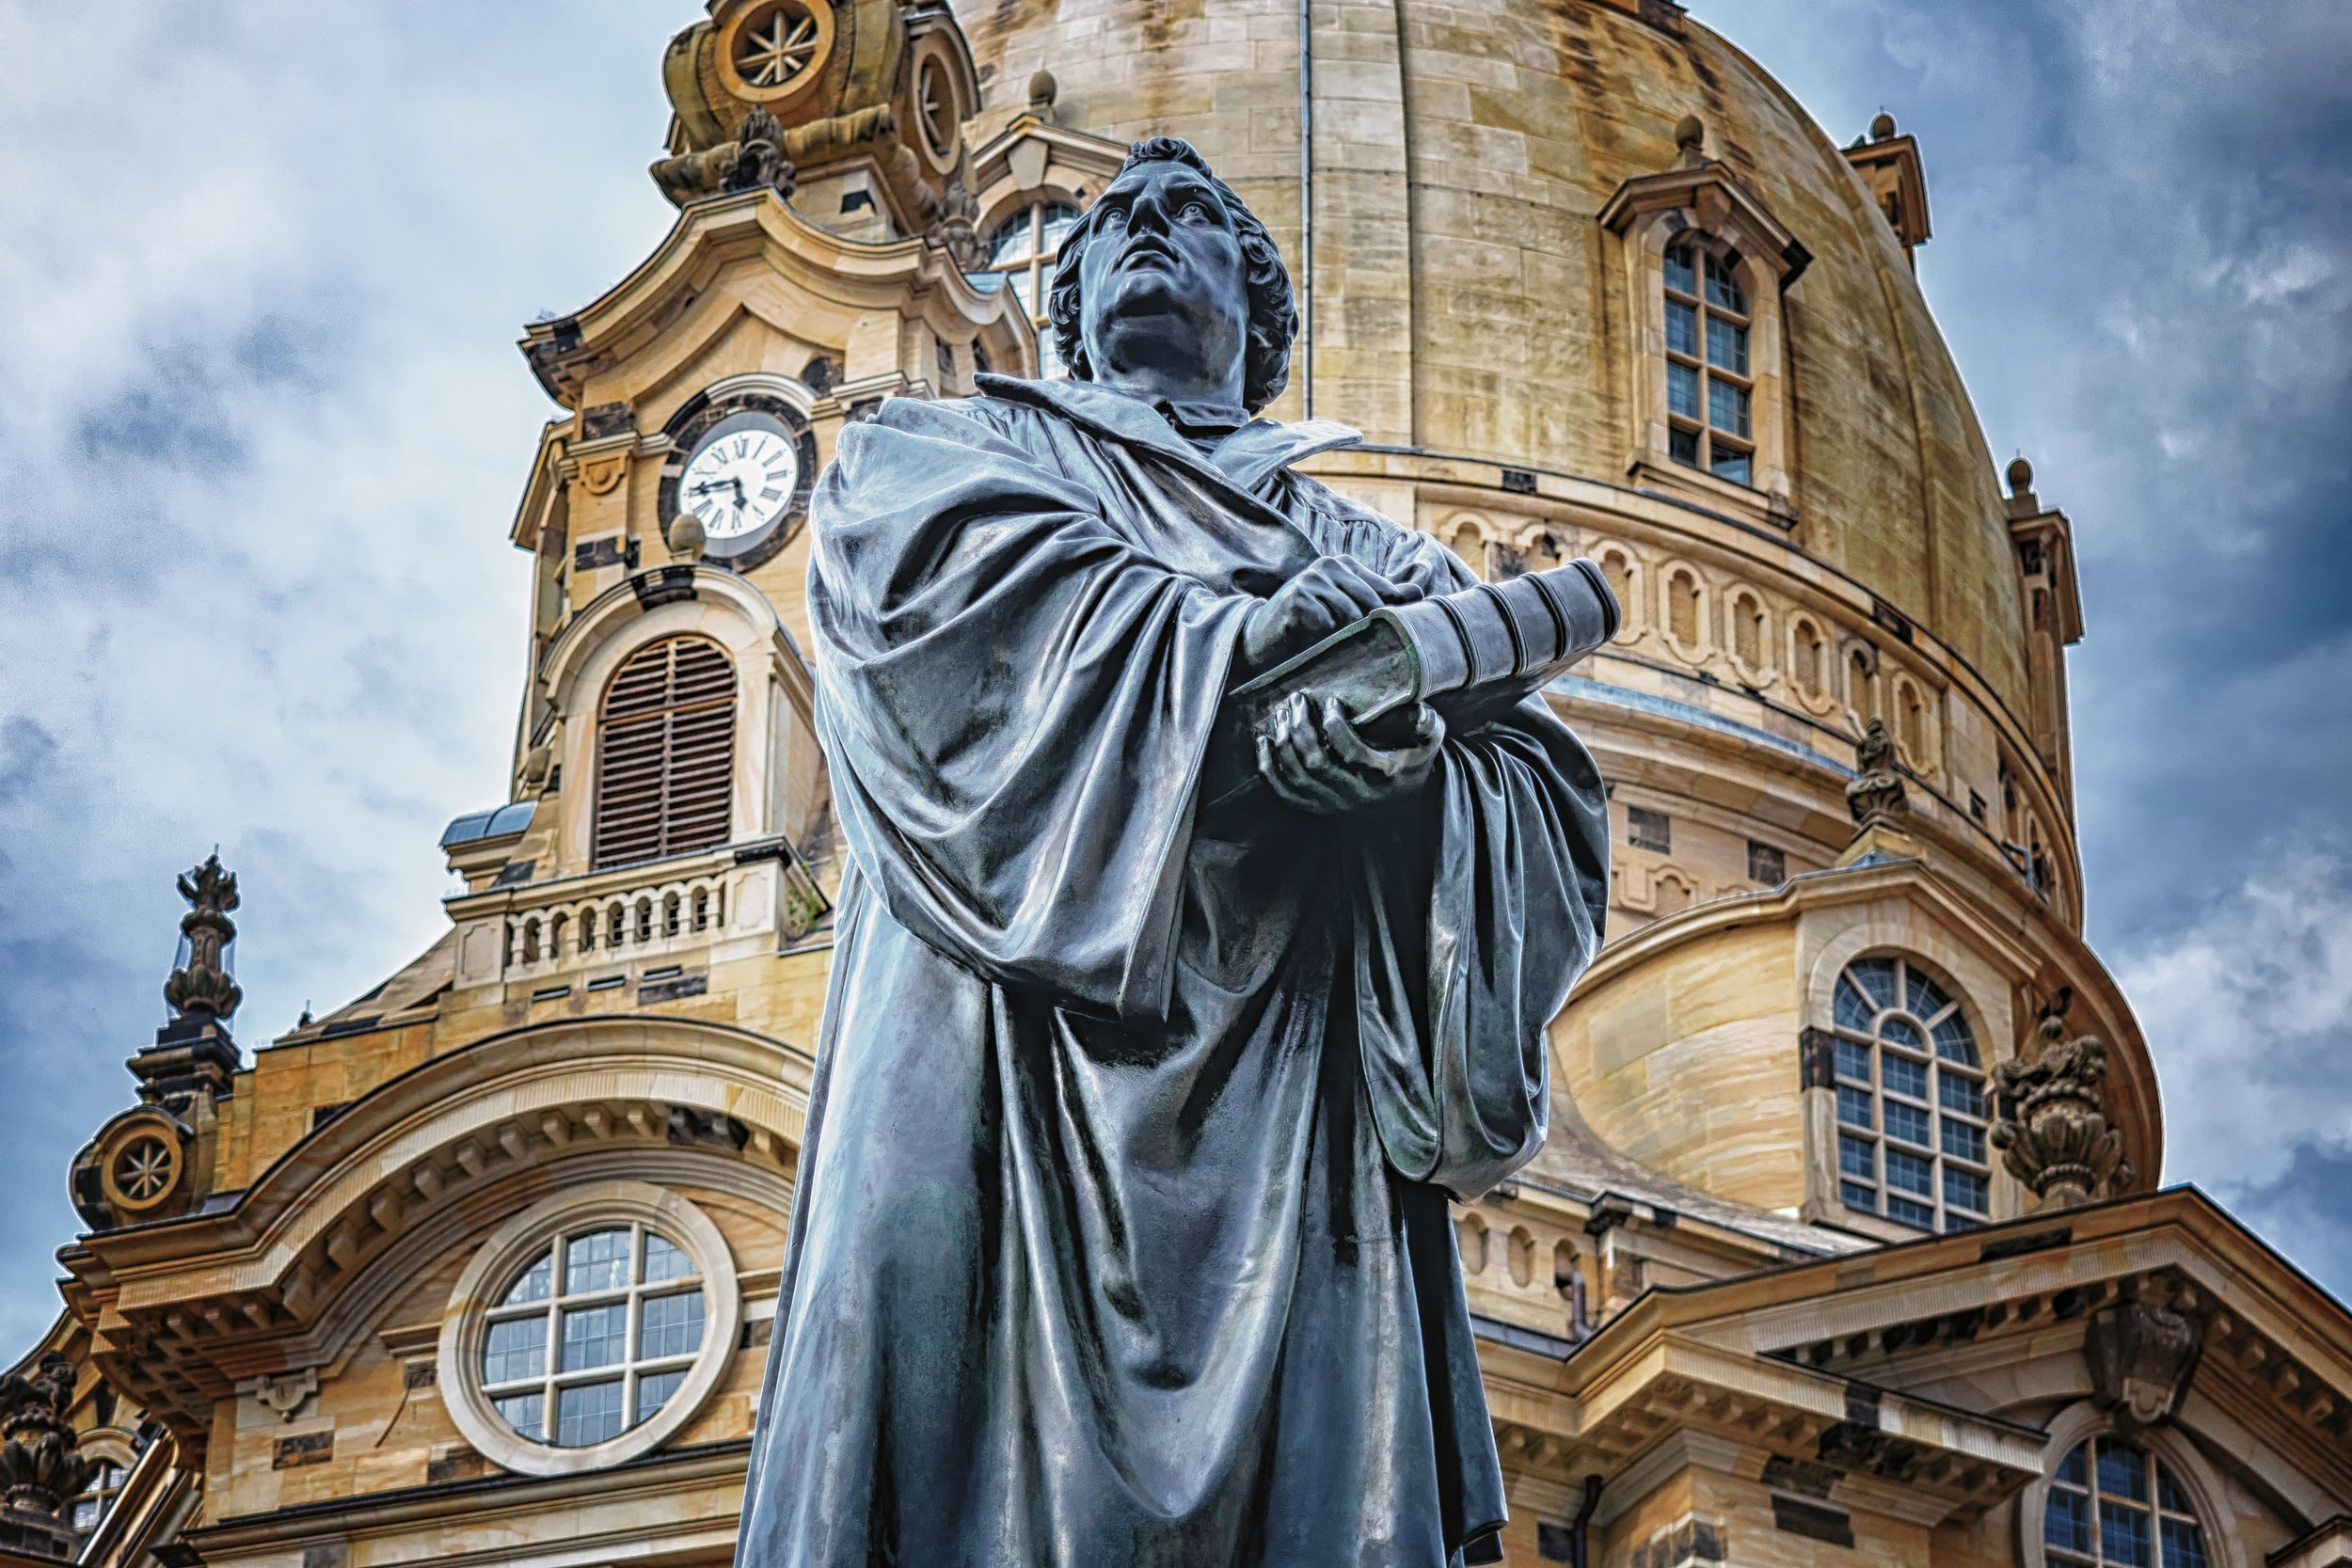 Statue of martin luther in front of the frouenkirche, dresden,germany photo courtesy of pixabay.com